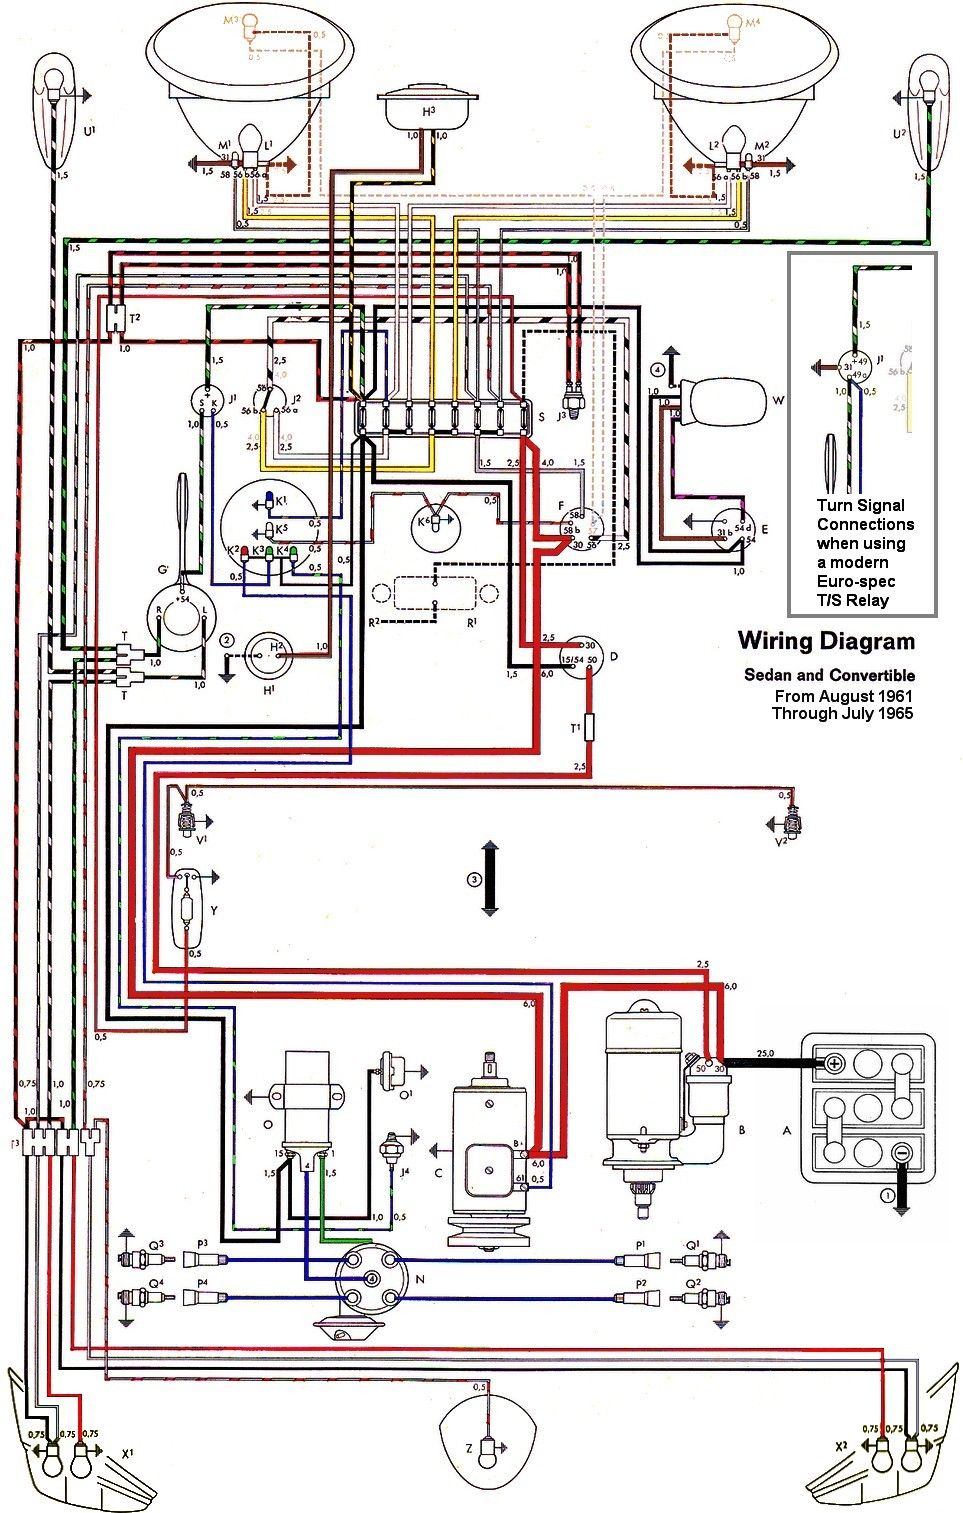 hight resolution of wiring diagram vw beetle sedan and convertible 1961 1965